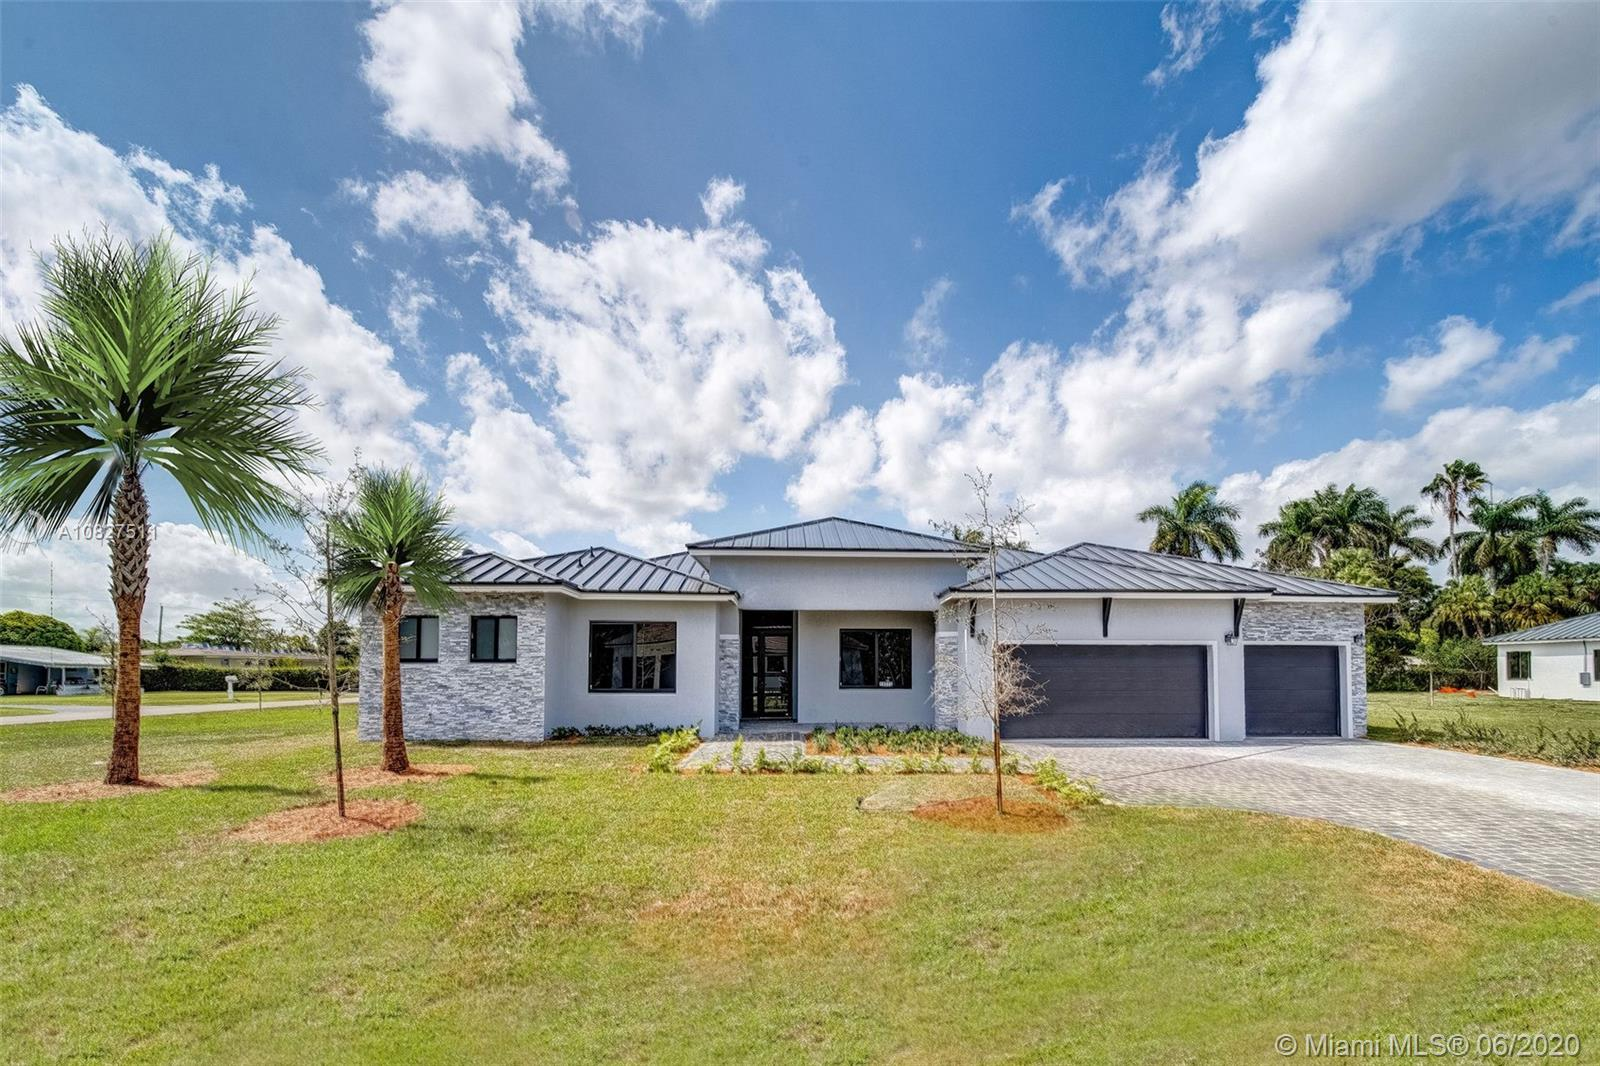 18850 SW 288 ST Property Photo - Unincorporated Dade County, FL real estate listing